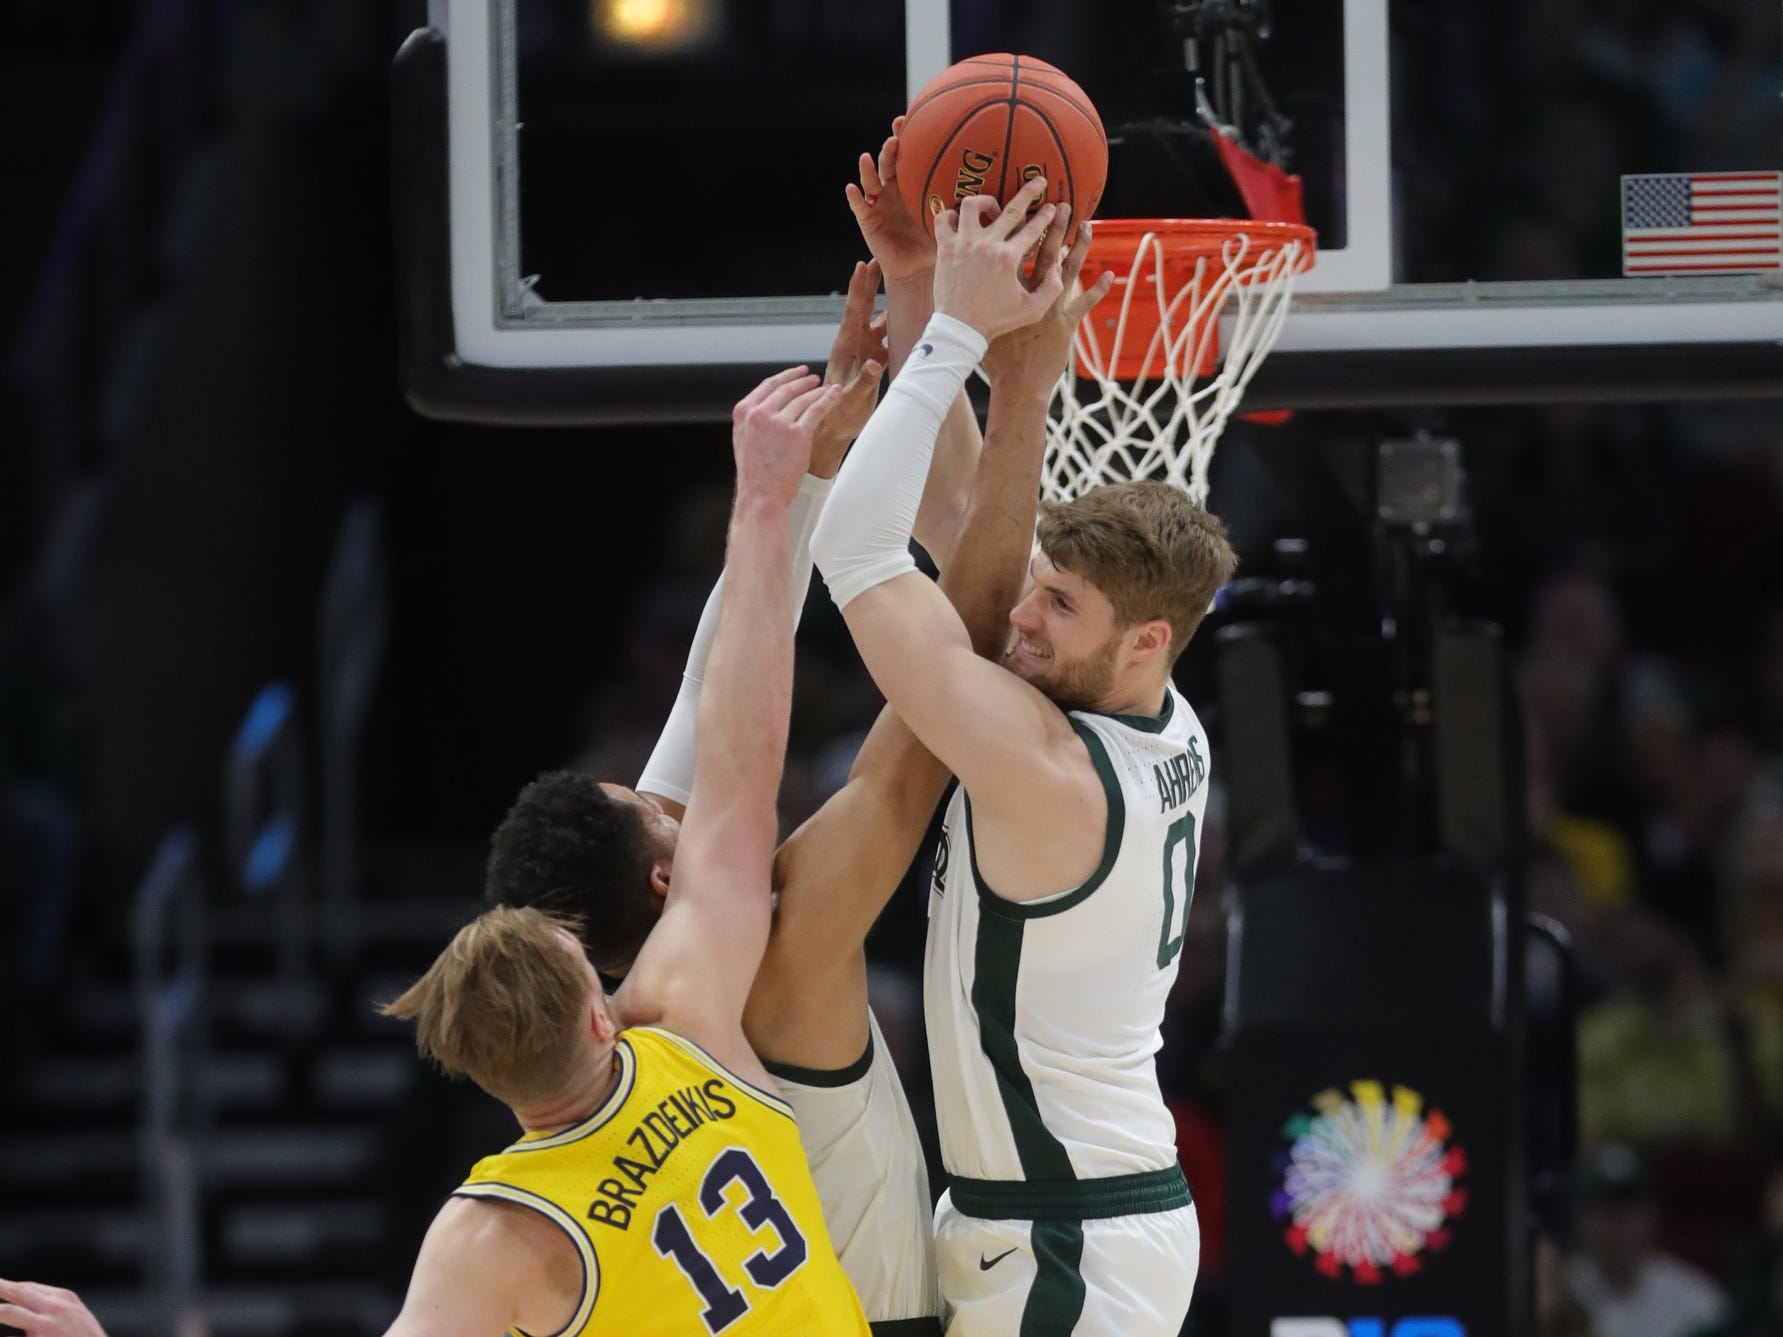 Michigan State forwards Kyle Ahrens, right, and Kenny Goins rebound against Michigan forward Ignas Brazkeikis during the first half of the Big Ten tournament championship Sunday, March 17, 2019 at the United Center in Chicago.